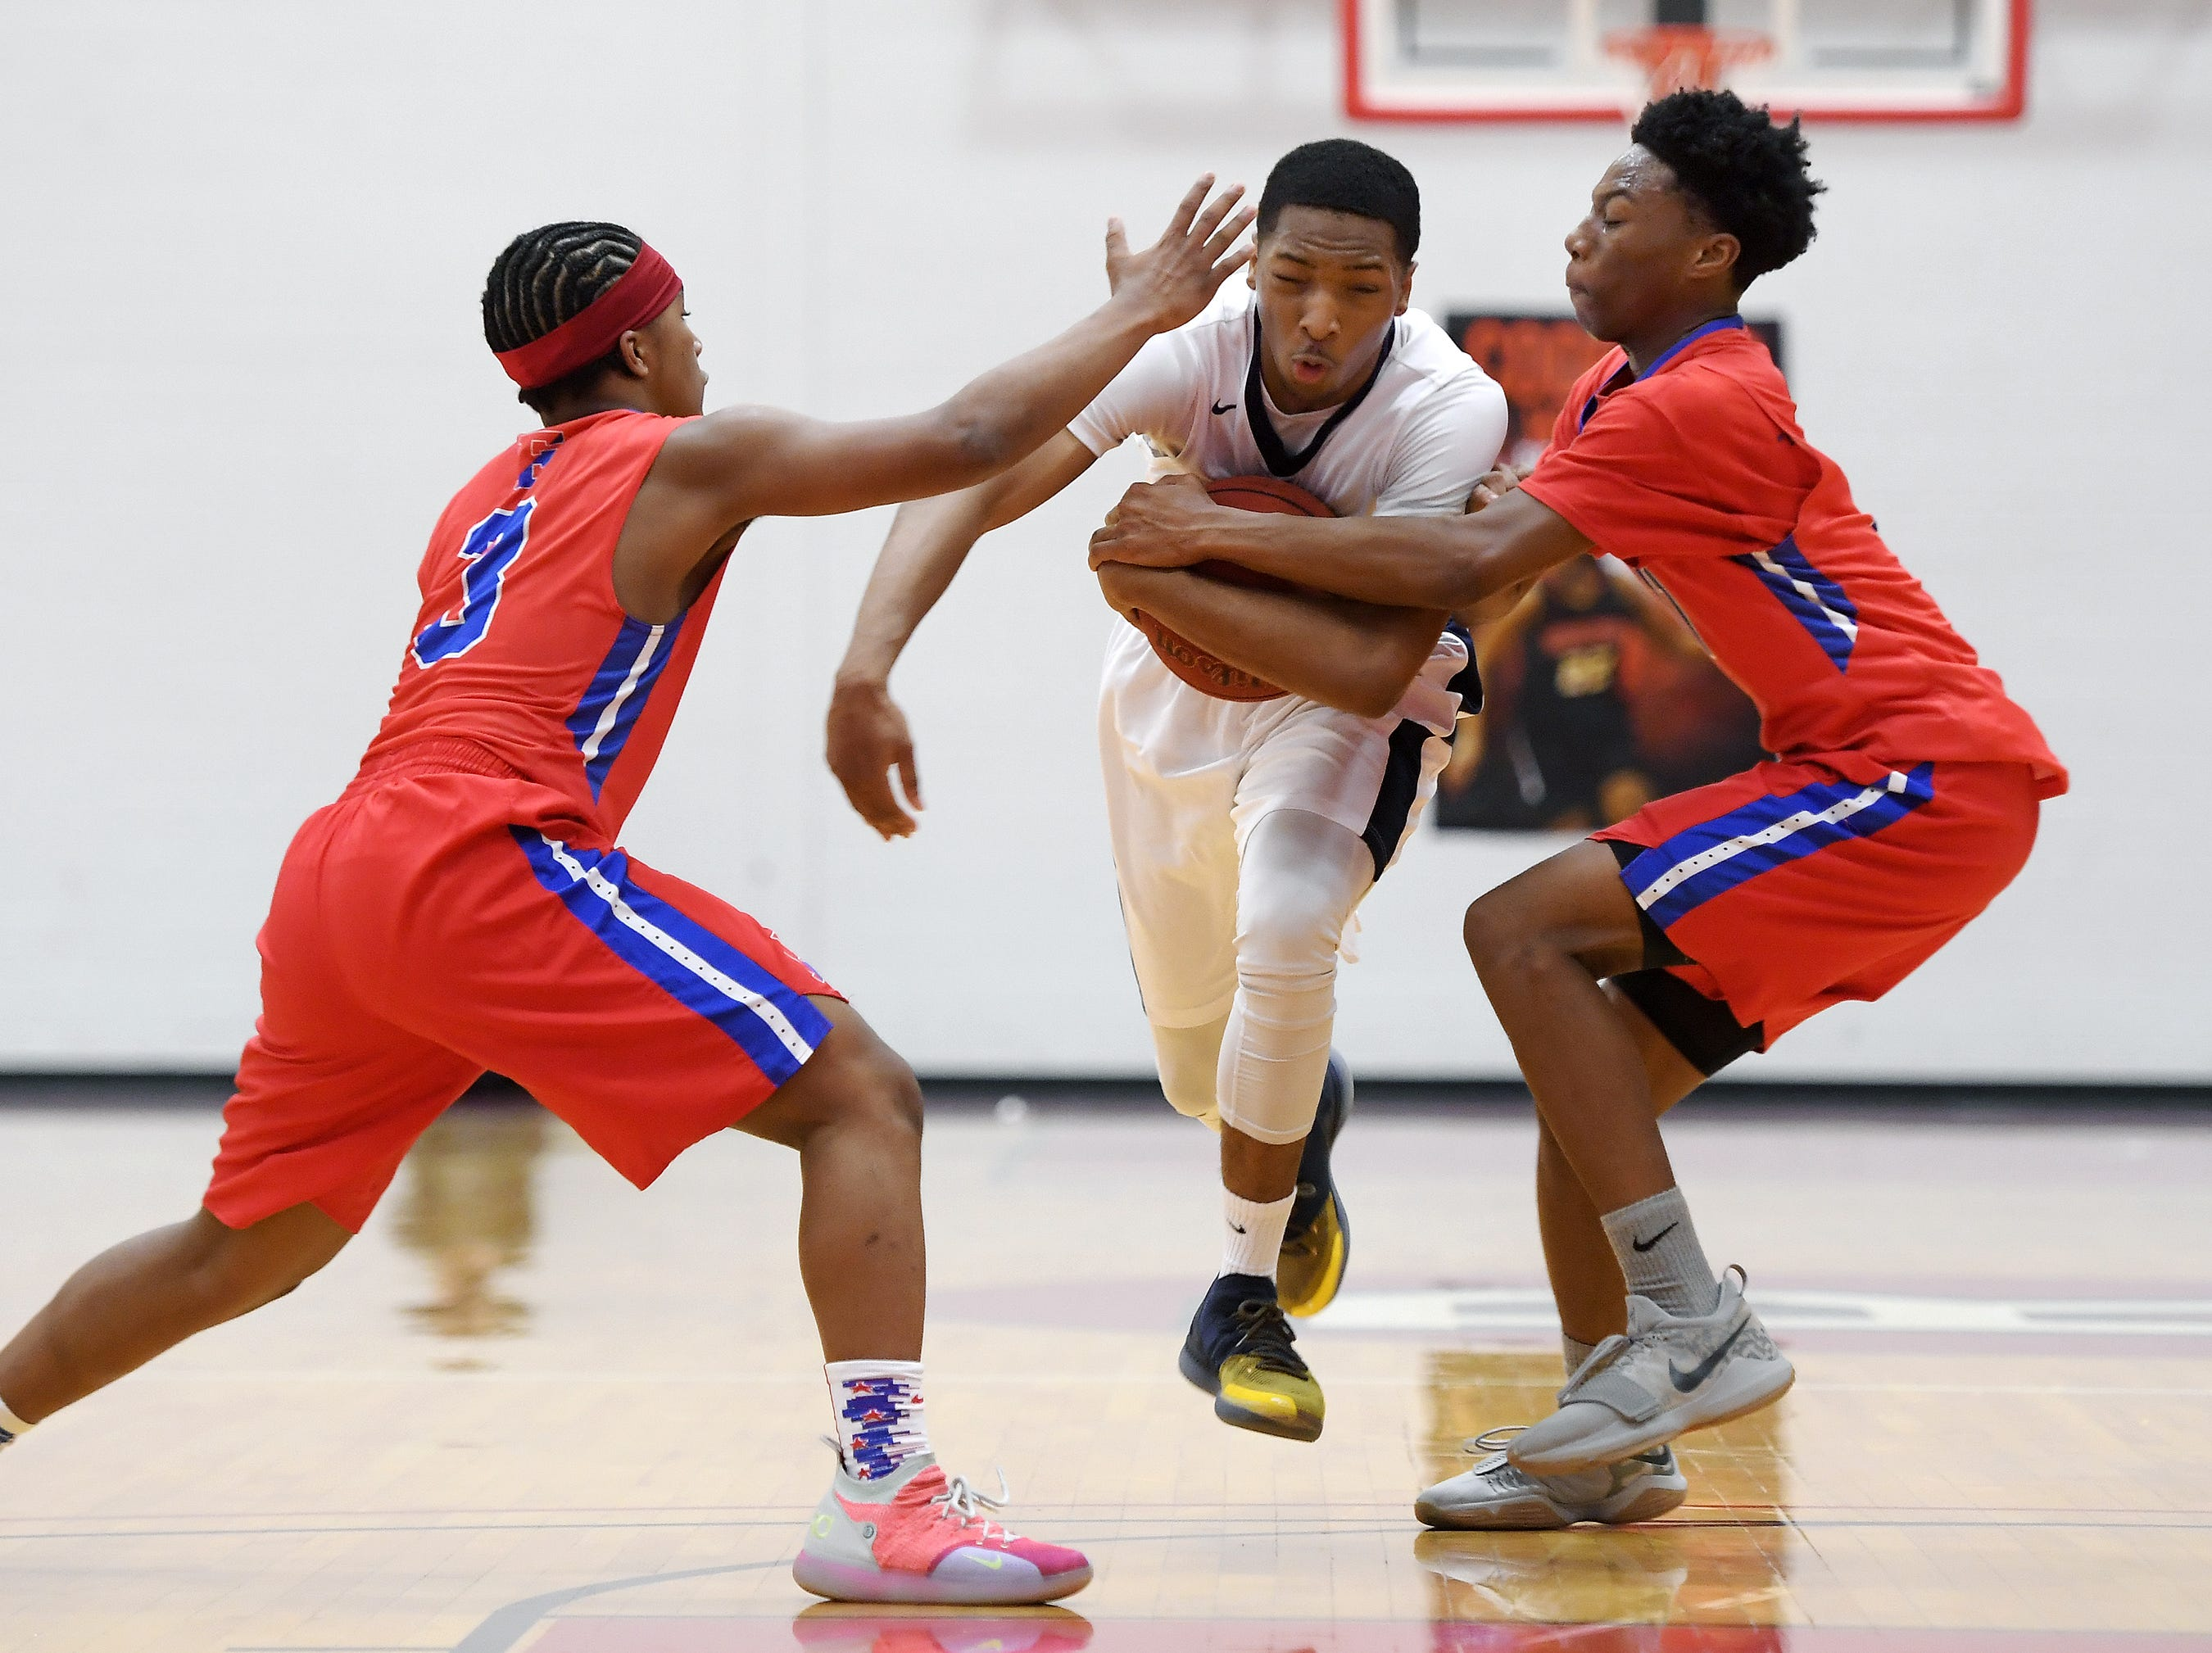 University Prep's Na'Zea Fowlks, center, splits the defense of Fairport's Andre Starks, left, and Vanzell Johnson during a regular season game played at Roberts Wesleyan College on Wednesday, Nov. 28, 2018. Fairport beat University Prep 56-51.